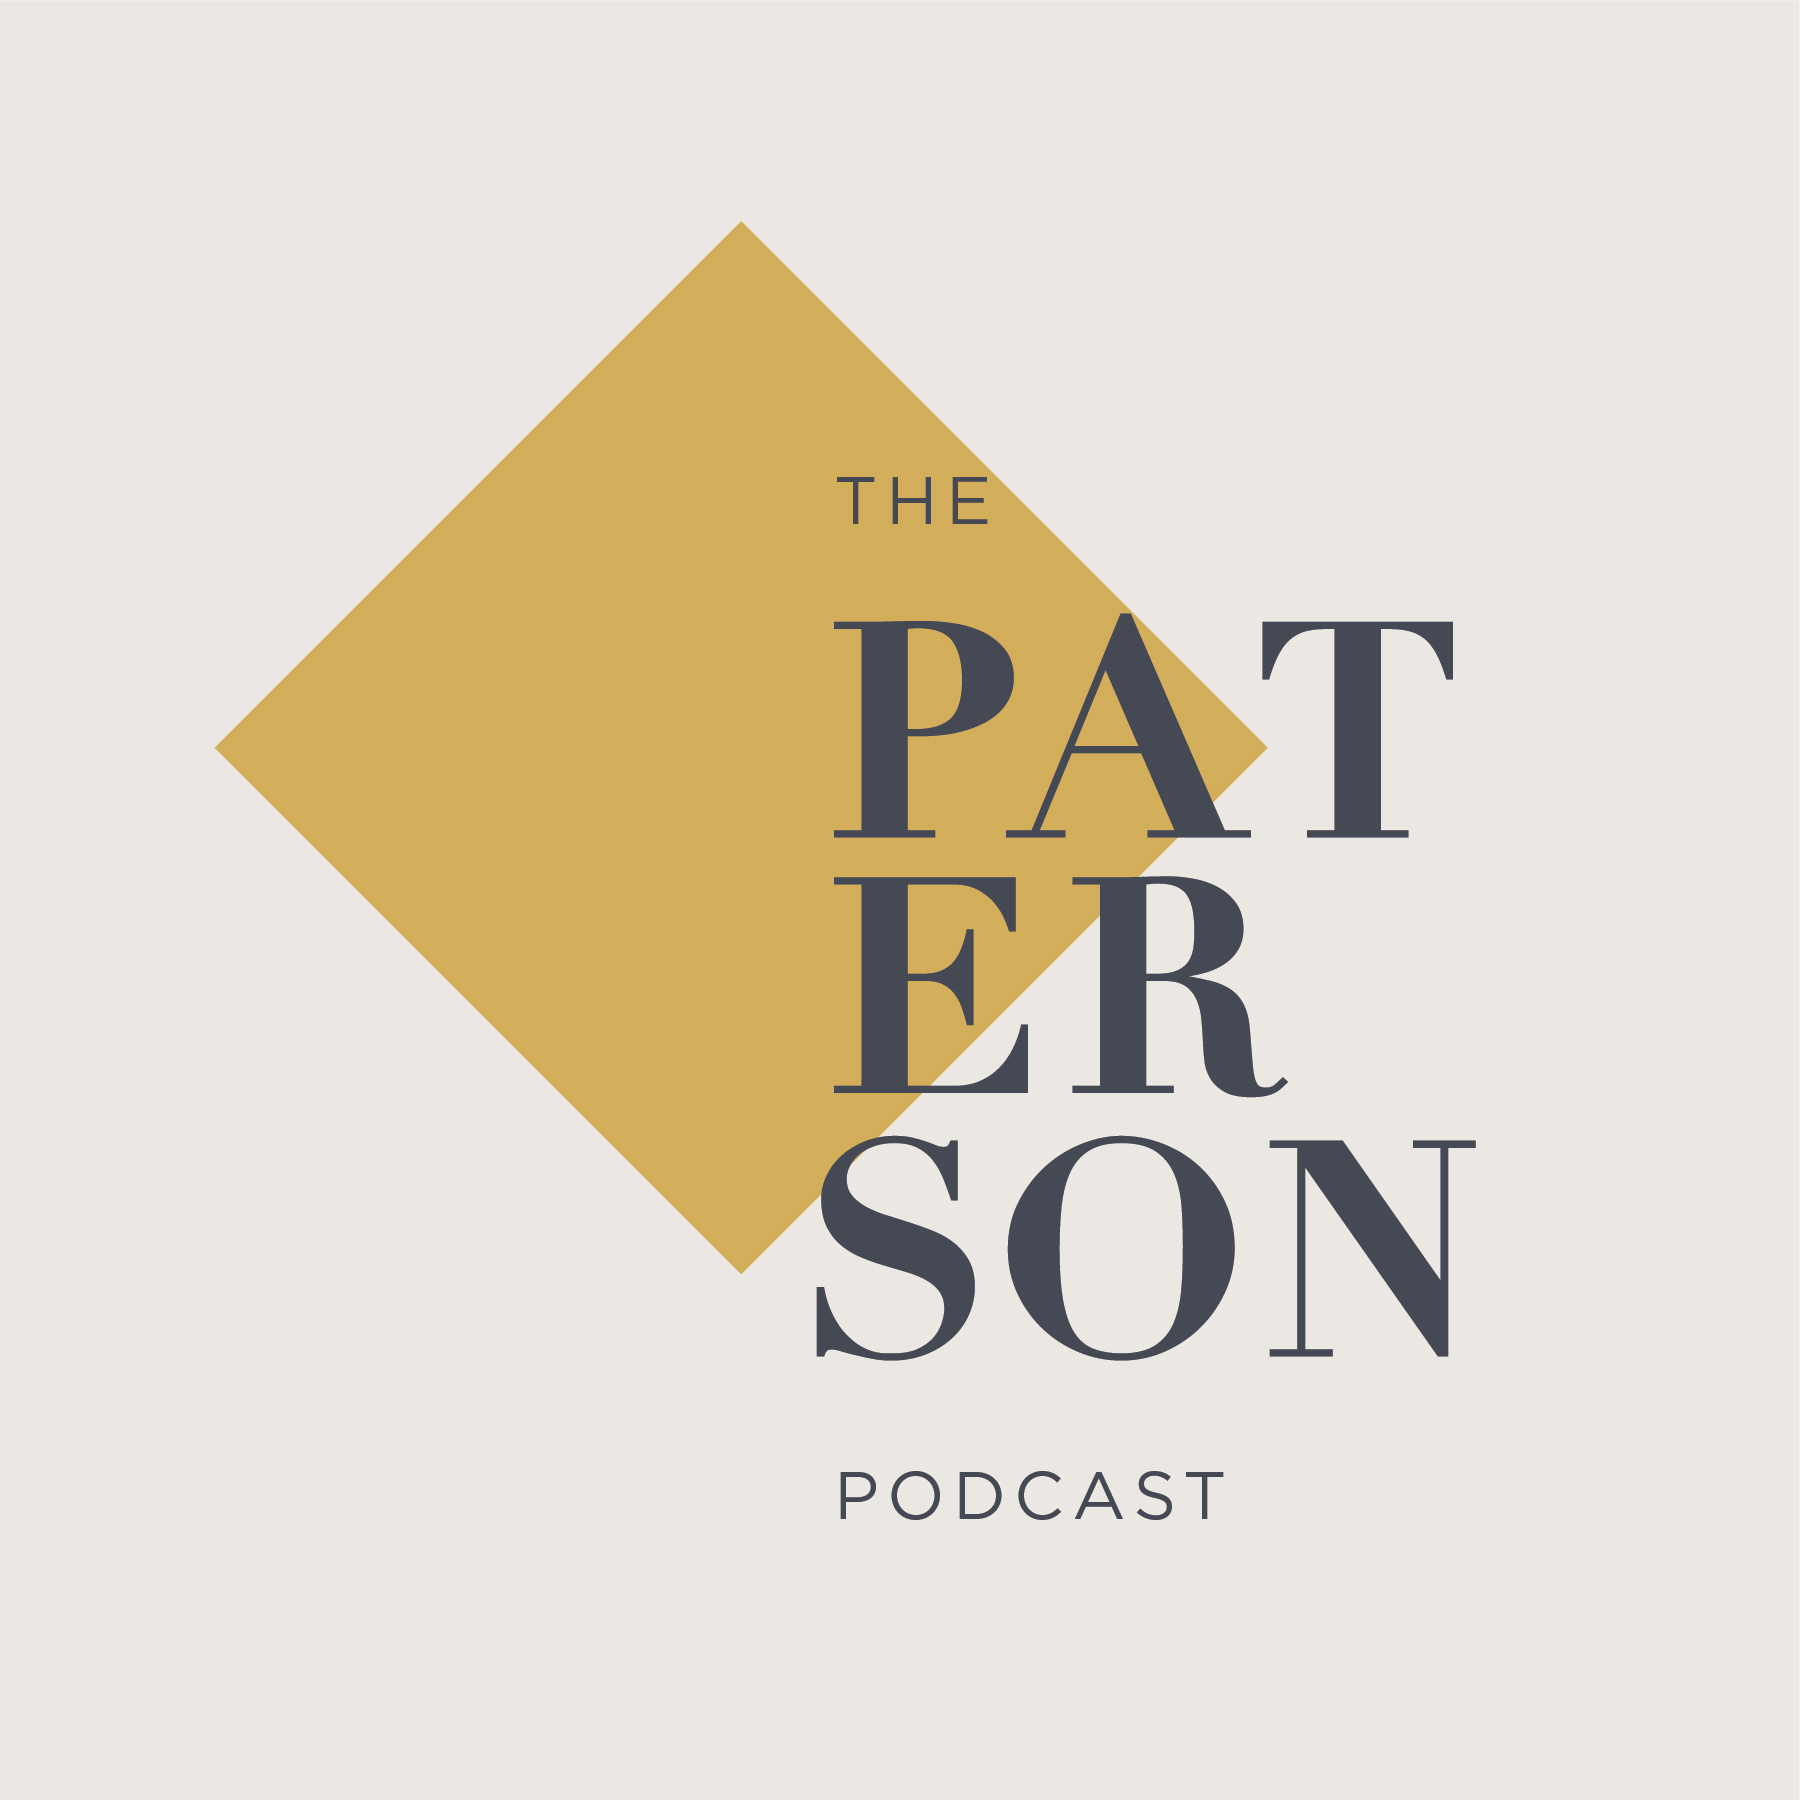 The Paterson Podcast